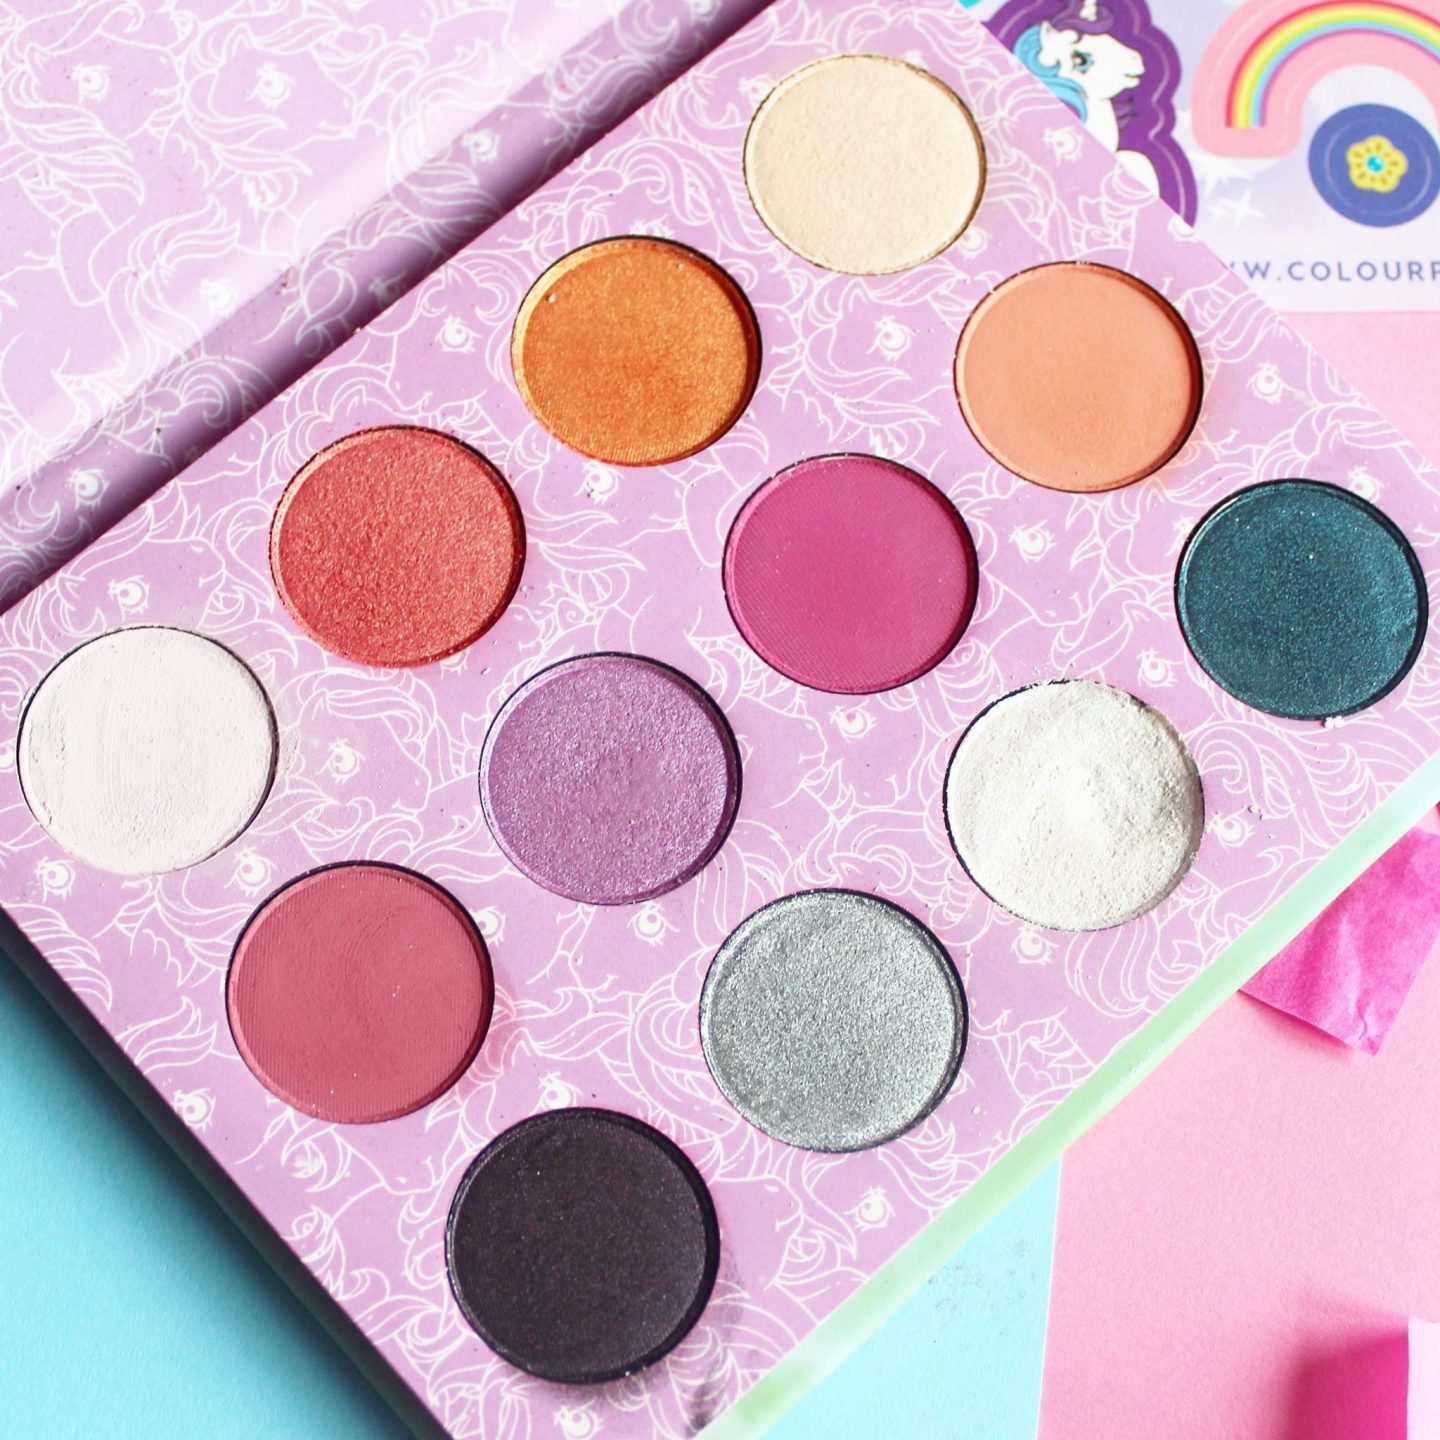 My Little Pony x ColourPop Eyeshadow Palette | Review & Swatches